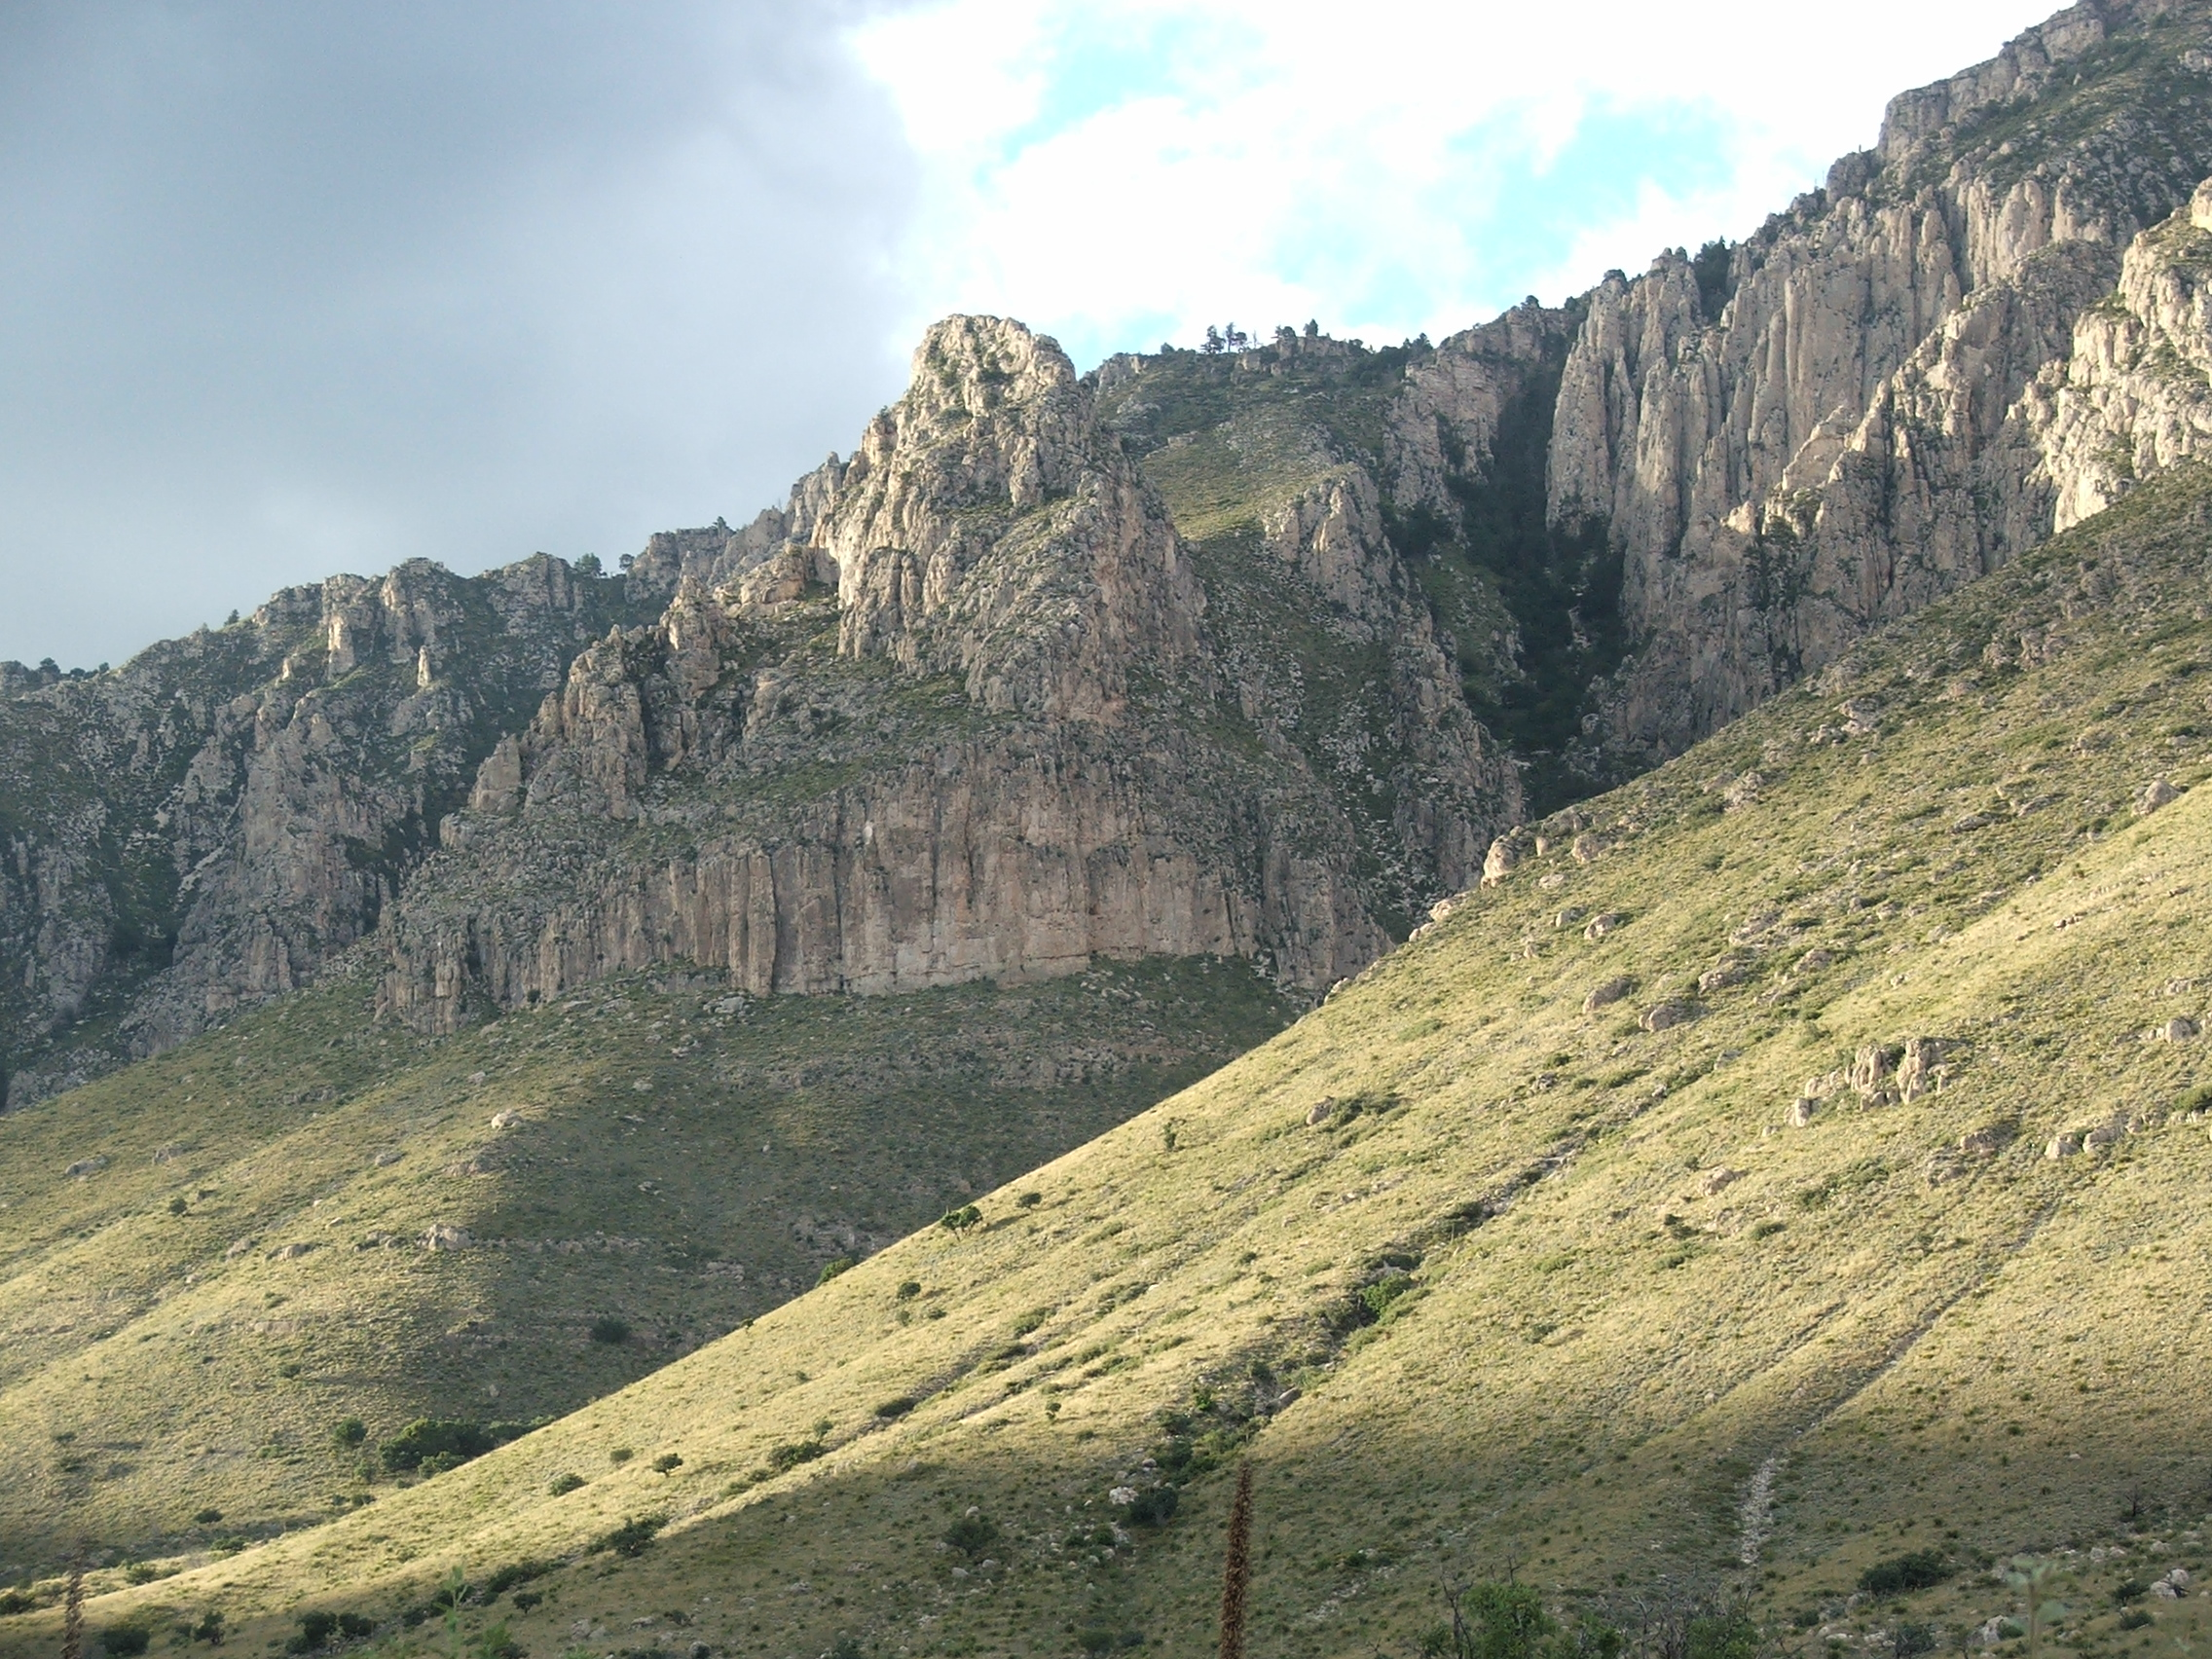 Pine Spring Canyon, Guadalupe Mountains, west Texas (© 2009 clasticdetritus.com)